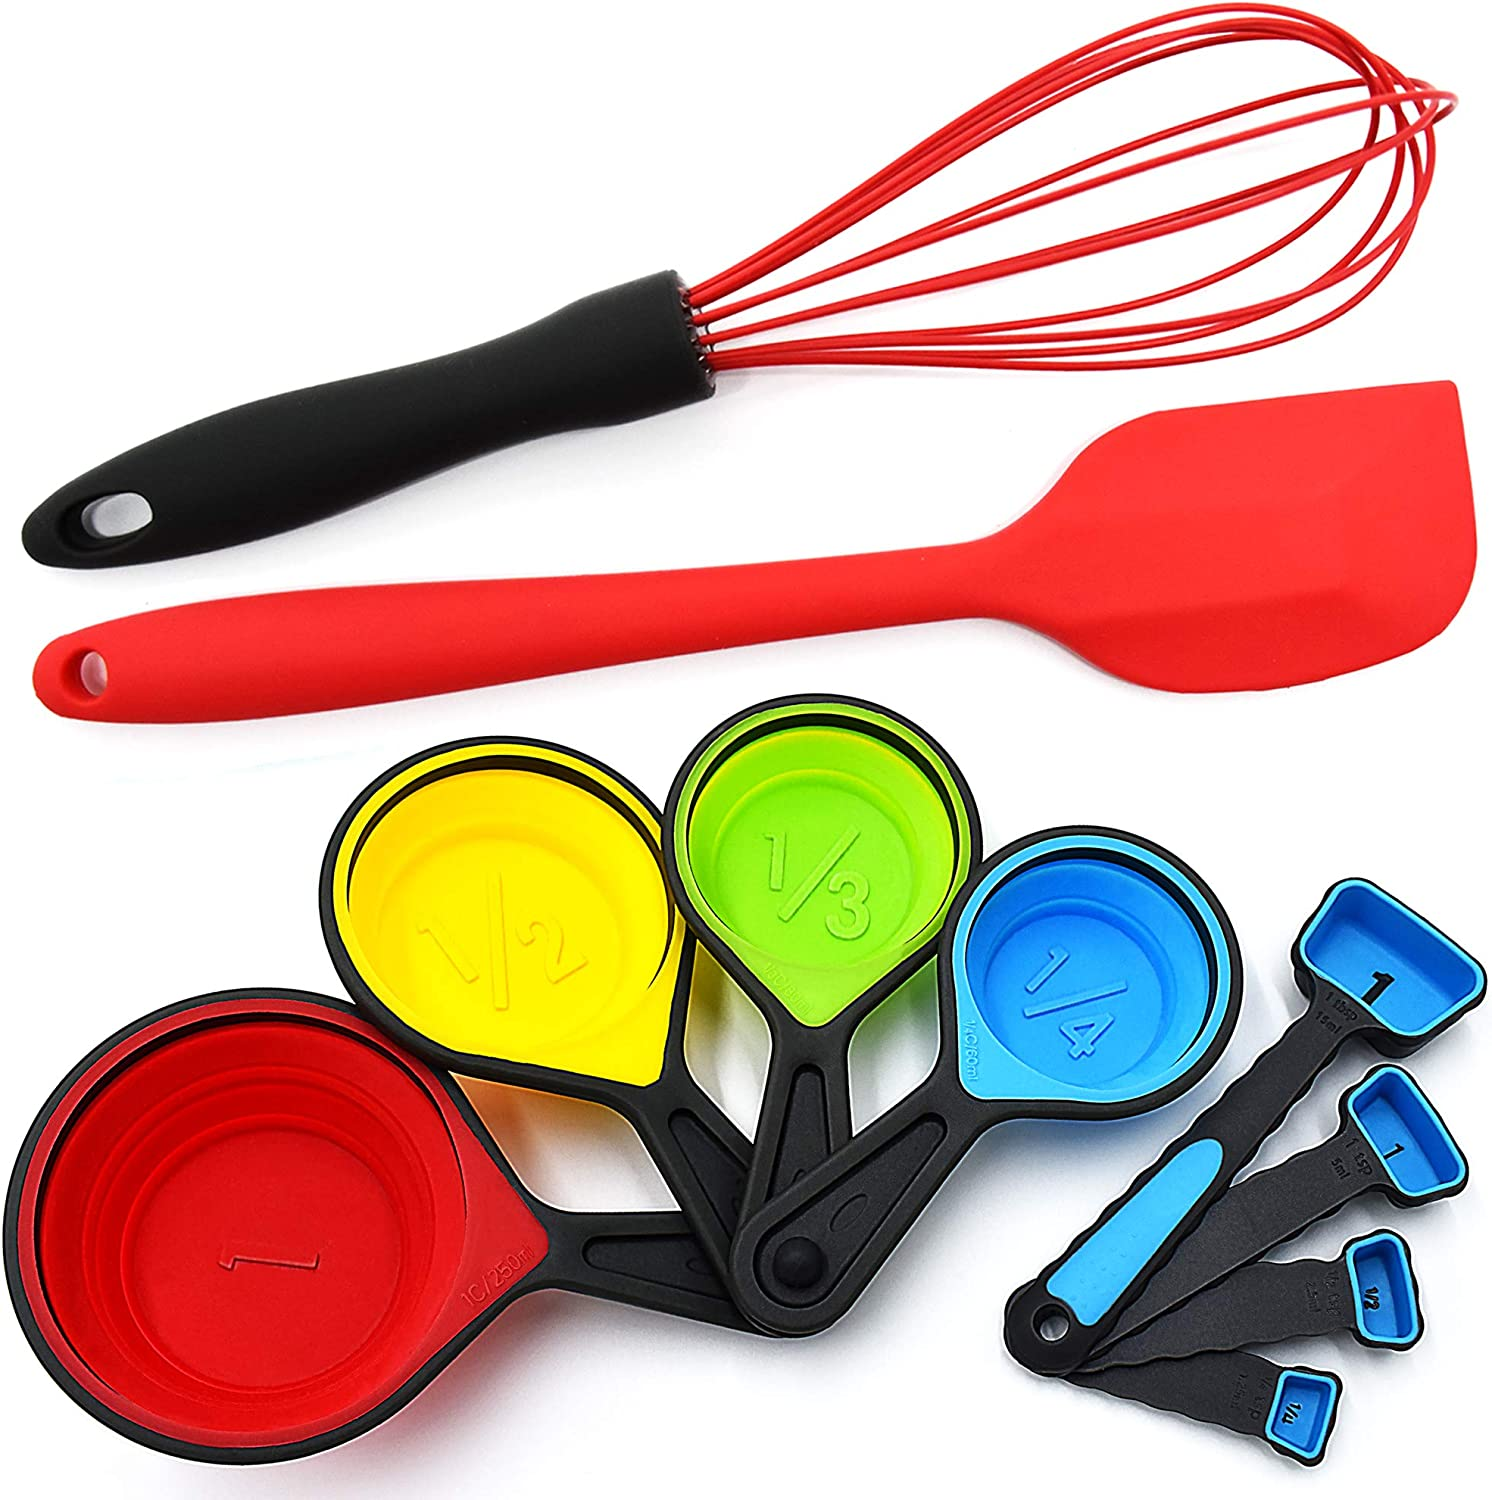 Silicone Whisk - Collapsible Measuring Cups and Spoons - Baking Spatula - 10 Piece Set – Cooking Kitchen Utensils